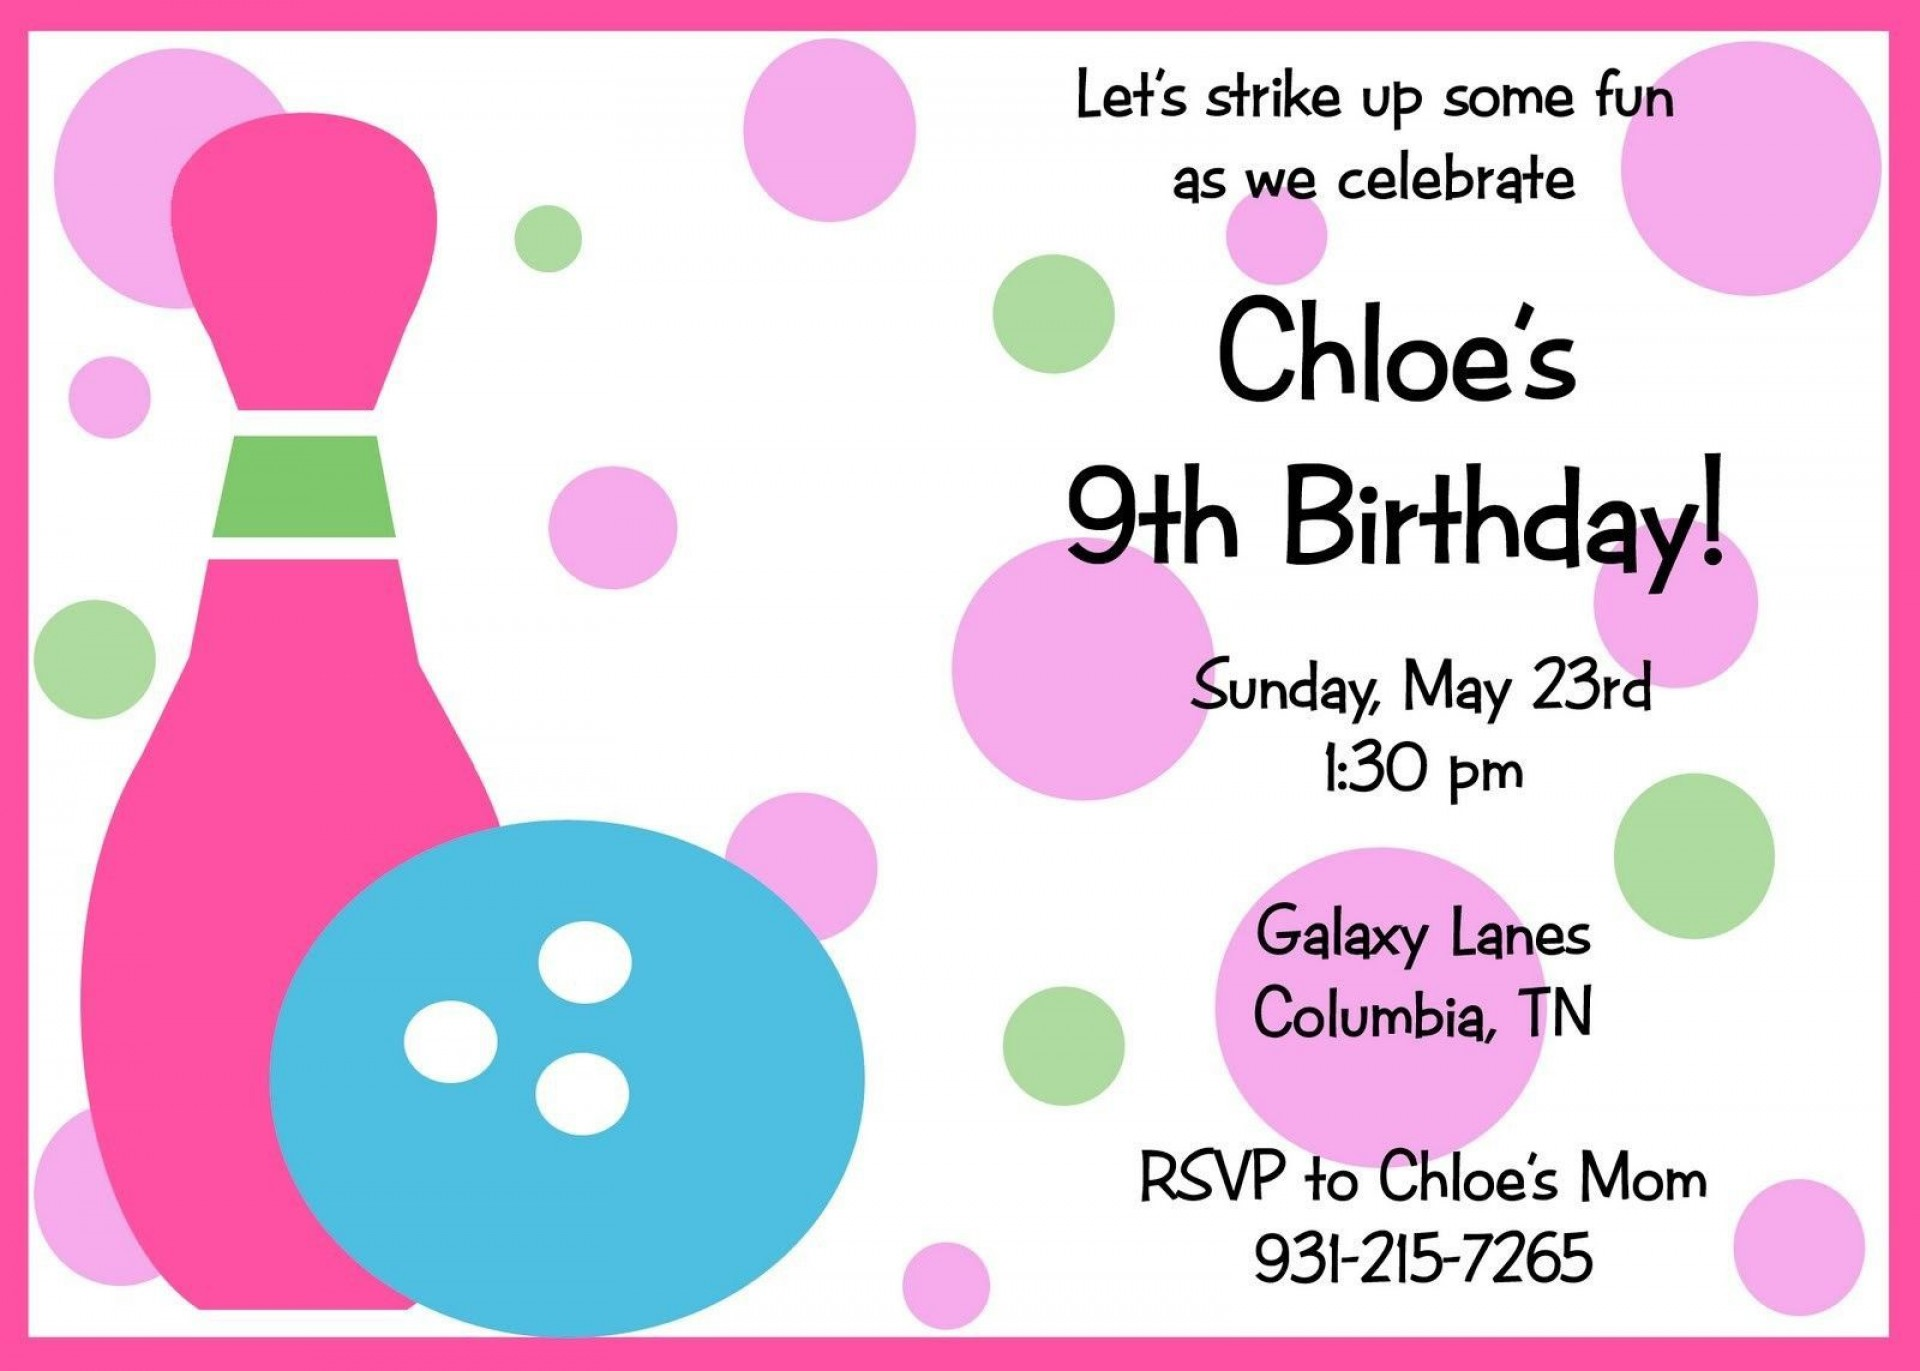 007 Unbelievable Bowling Party Invite Printable Free Inspiration  Birthday Invitation1920